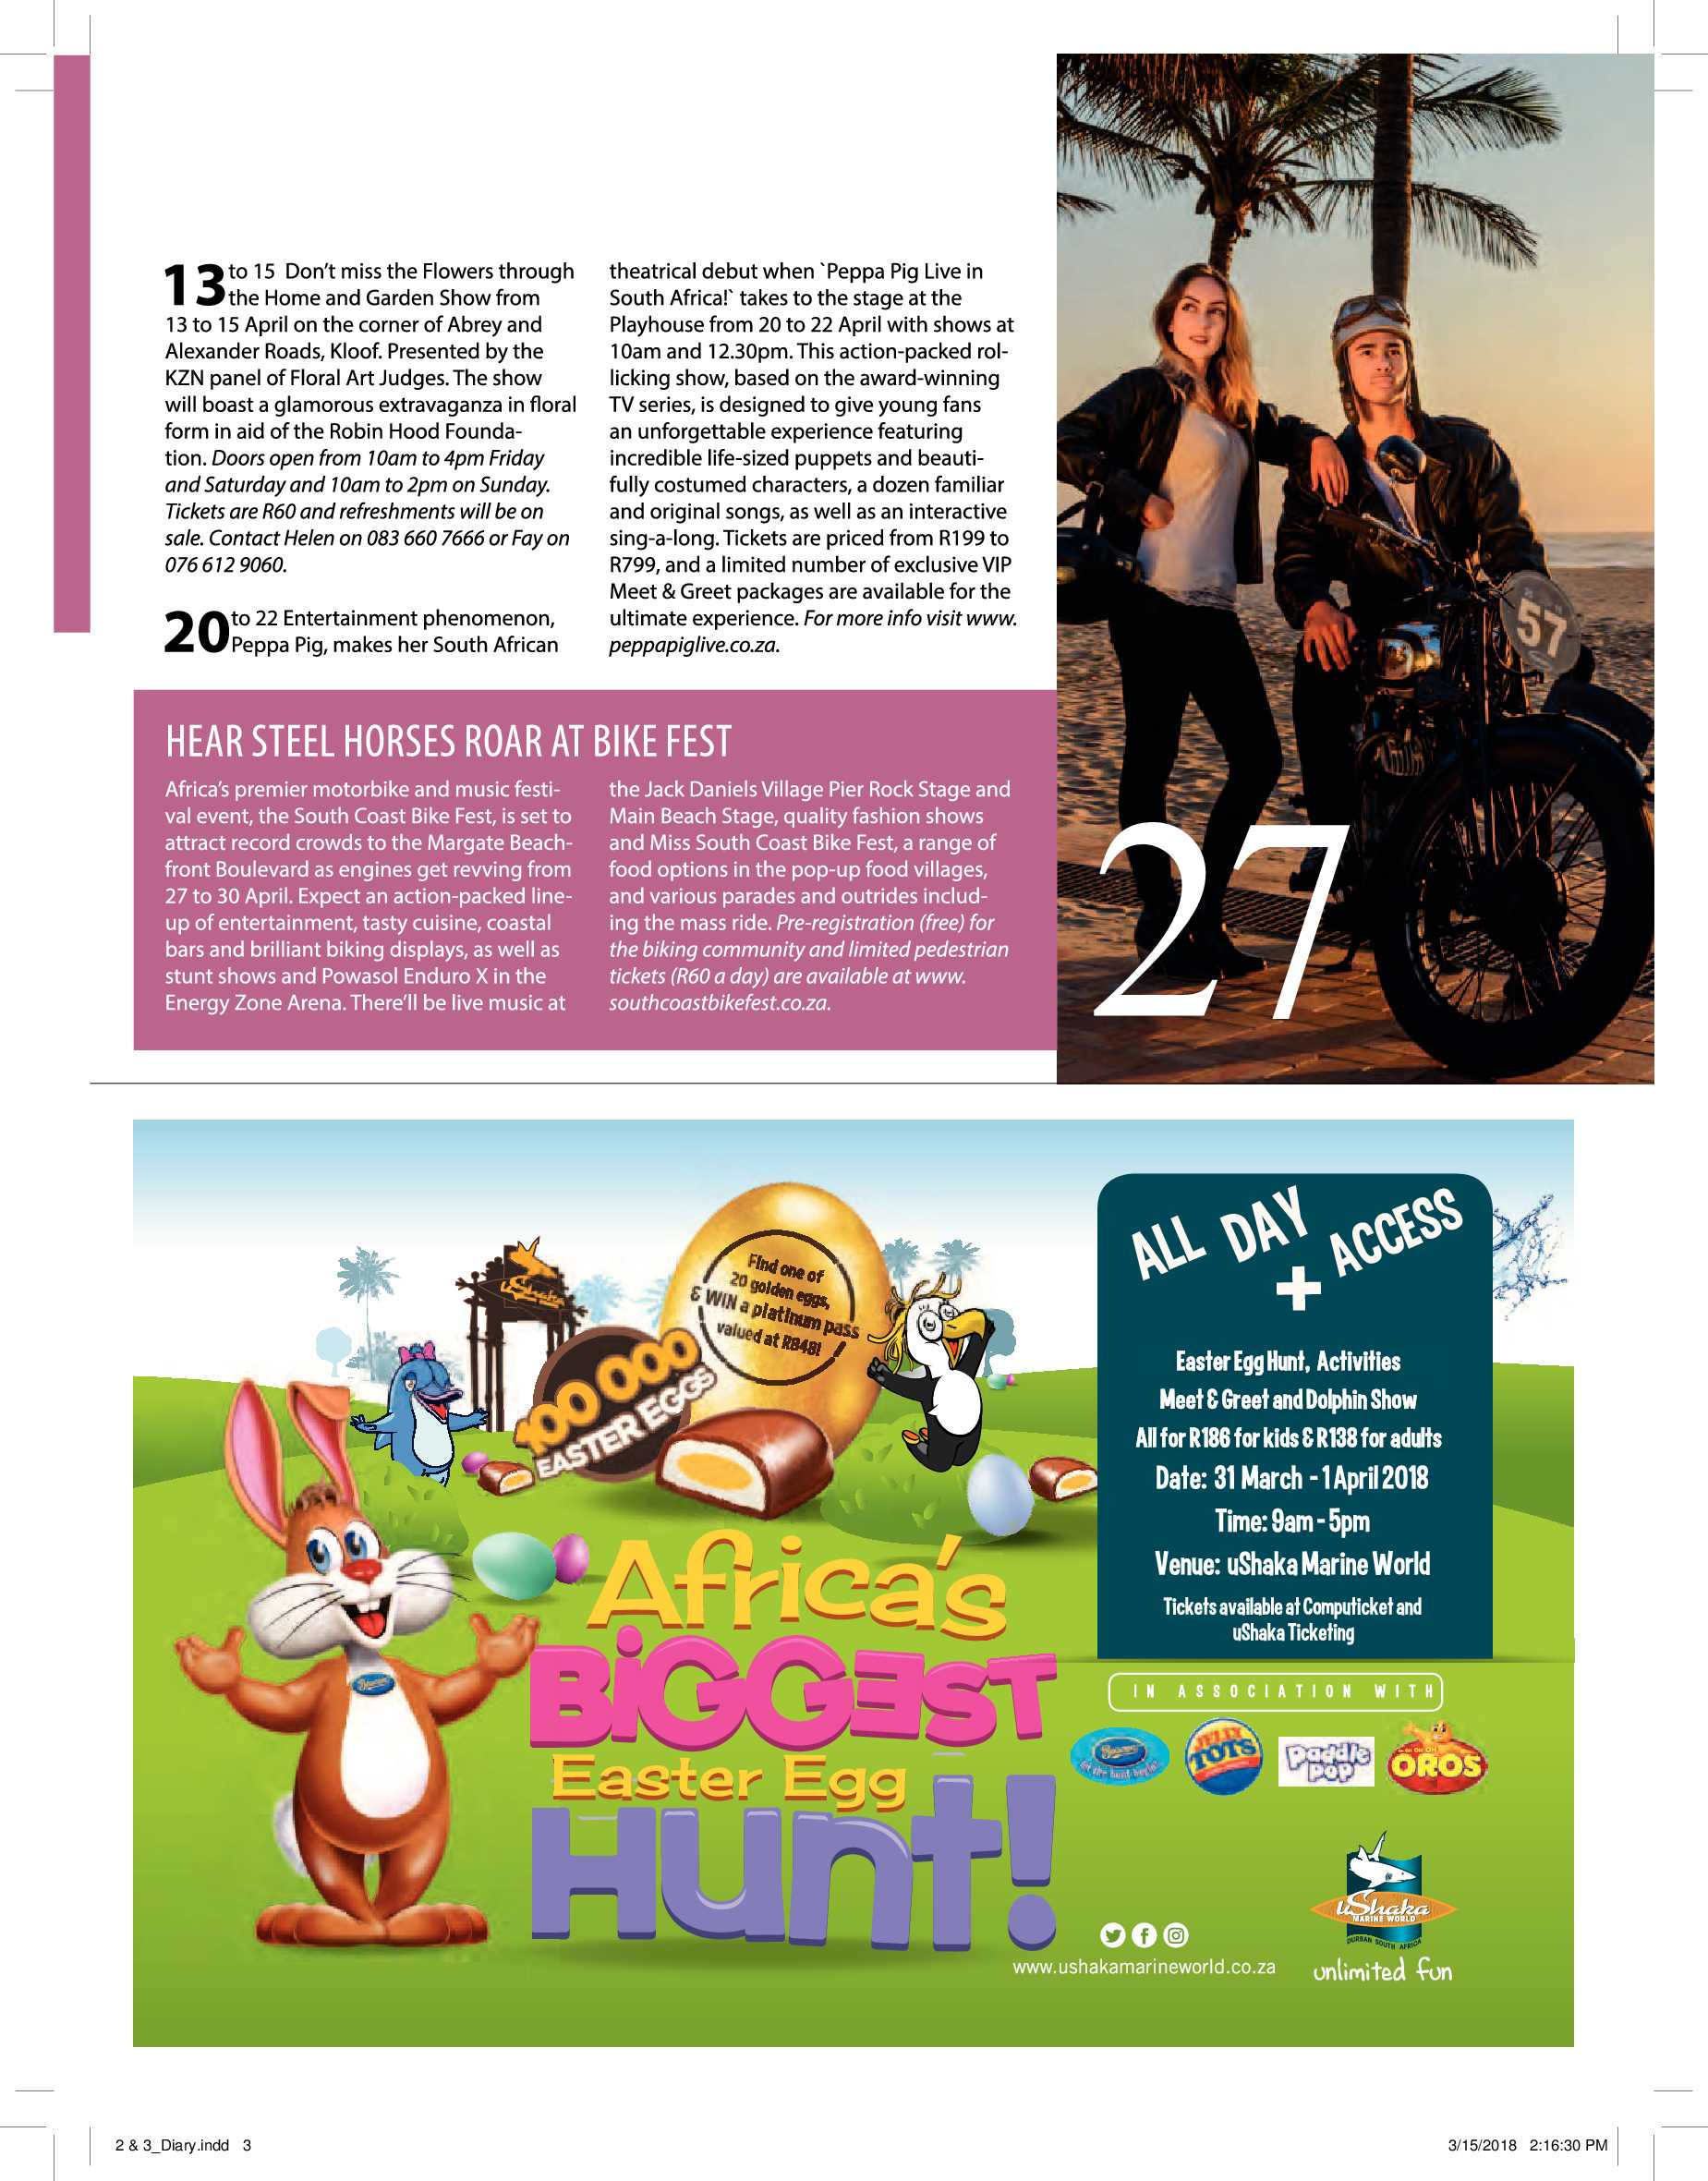 durban-get-magazine-april-2018-epapers-page-7